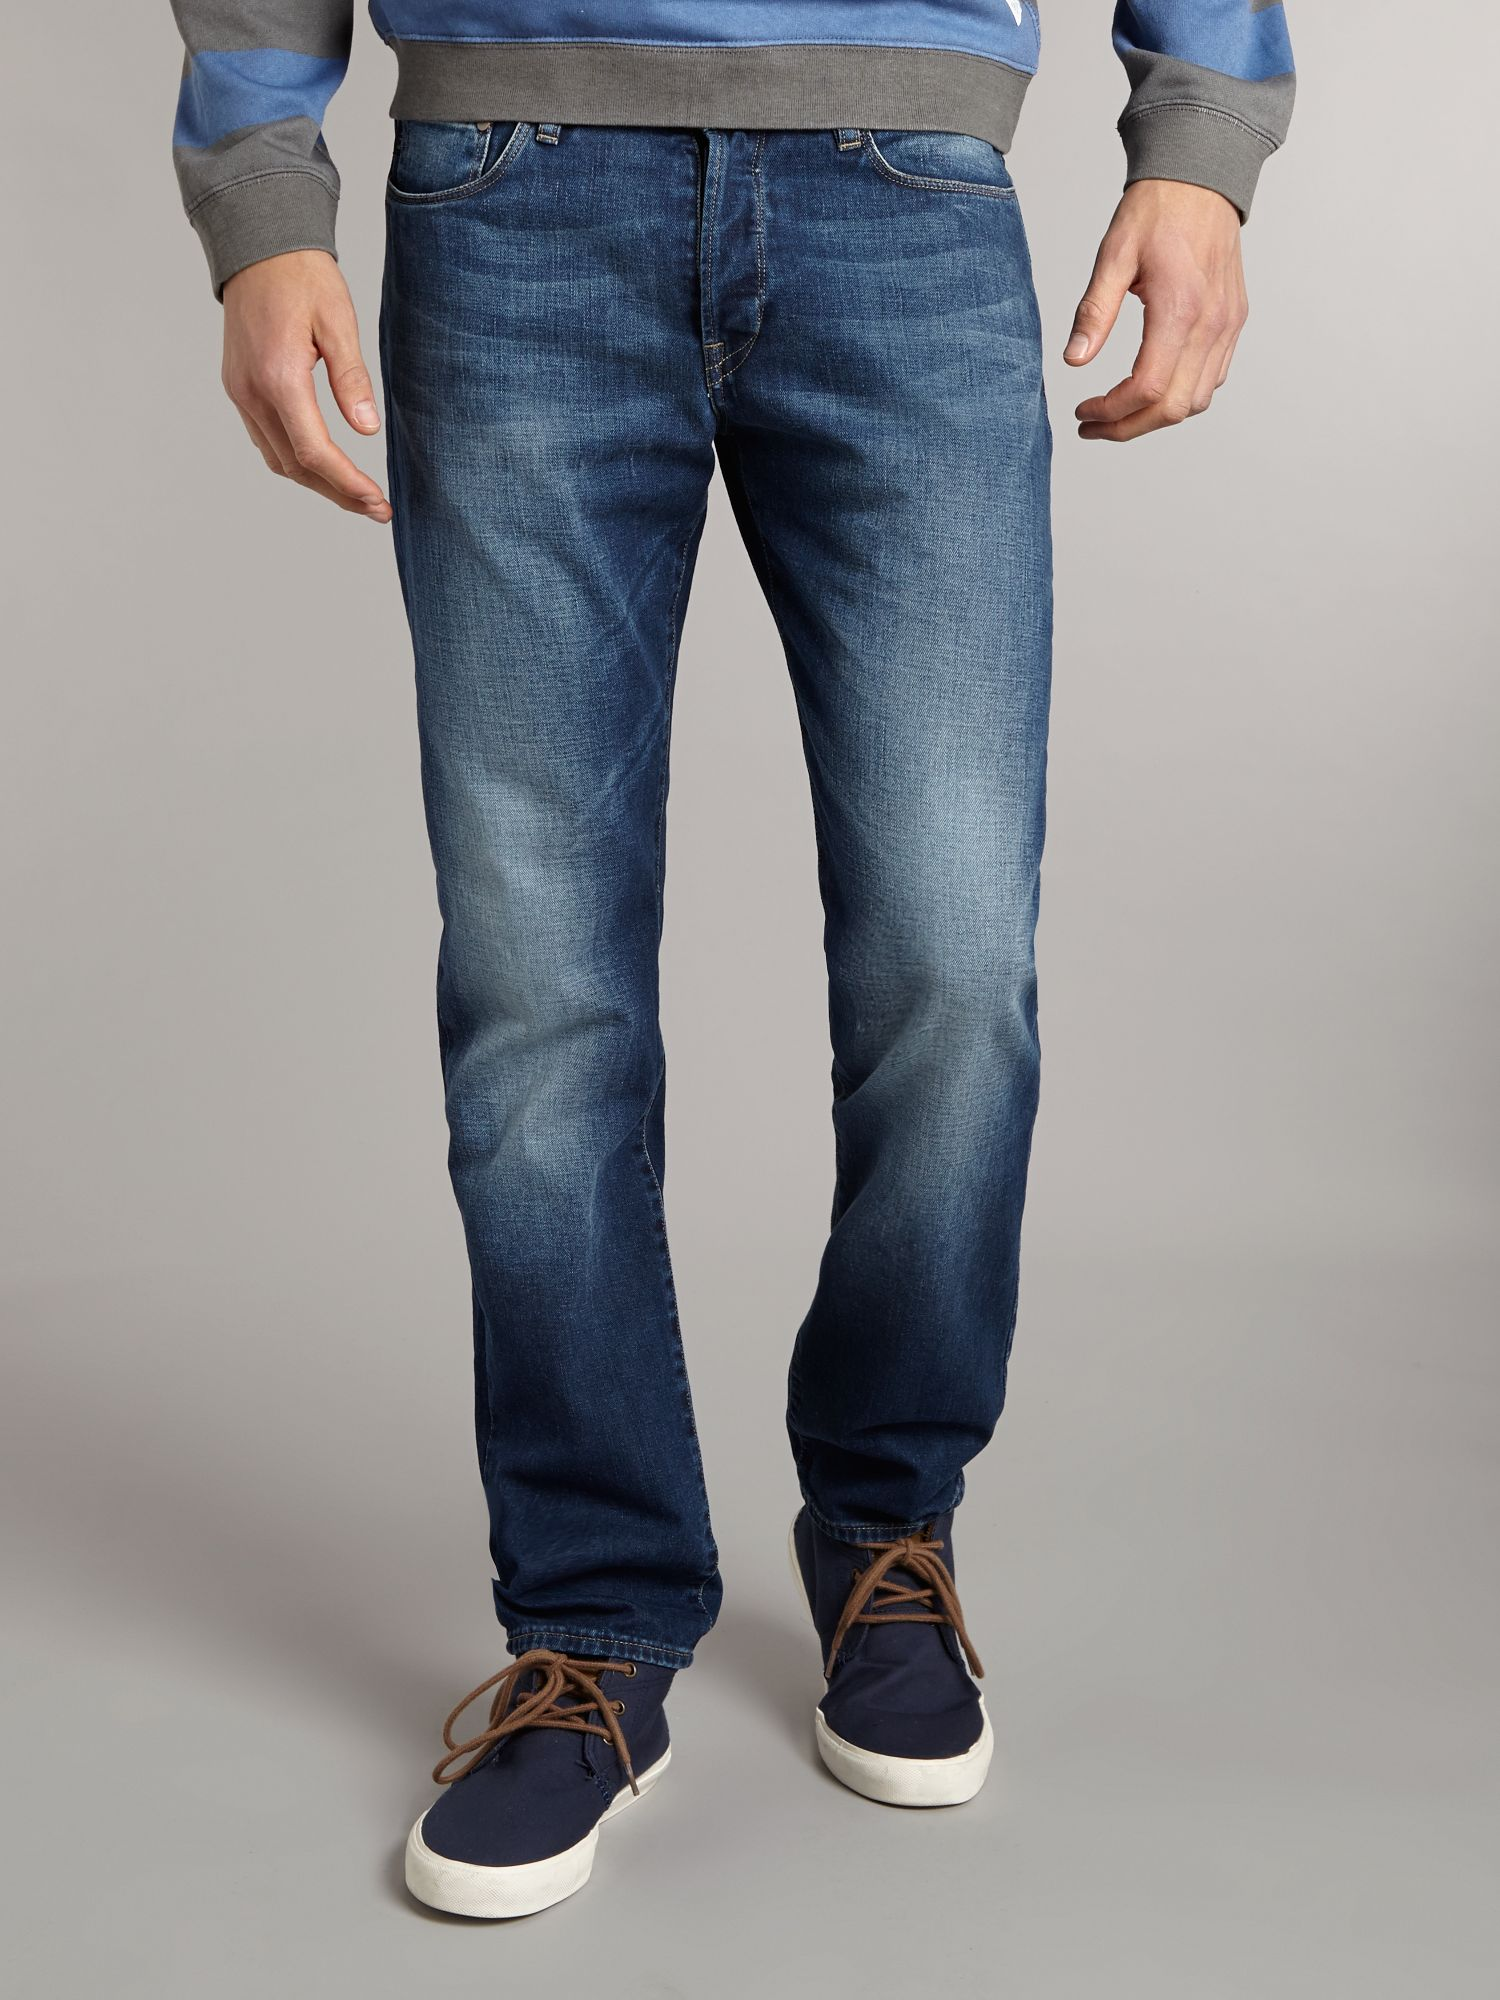 Compact denim tapered fit jeans